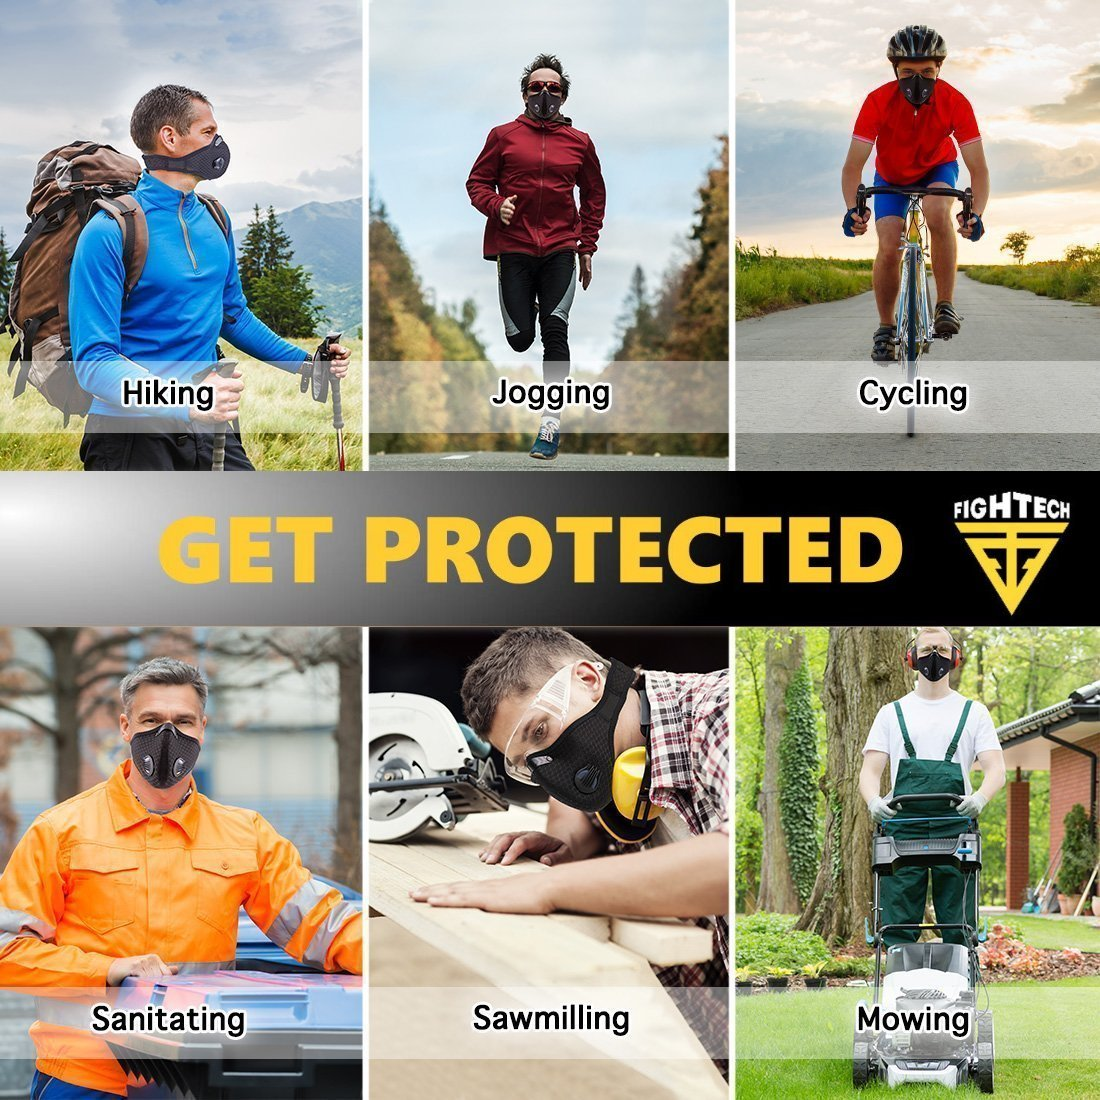 Anti-Pollution Dustproof/Dust Mask with 2 Valves and 4 Activated Carbon N99 Filters. Filtration of Exhaust Gas, Pollen Allergy and PM2.5. Cycling Face Mask for Outdoor Activities by FIGHTECH (BLK) by FIGHTECH (Image #7)